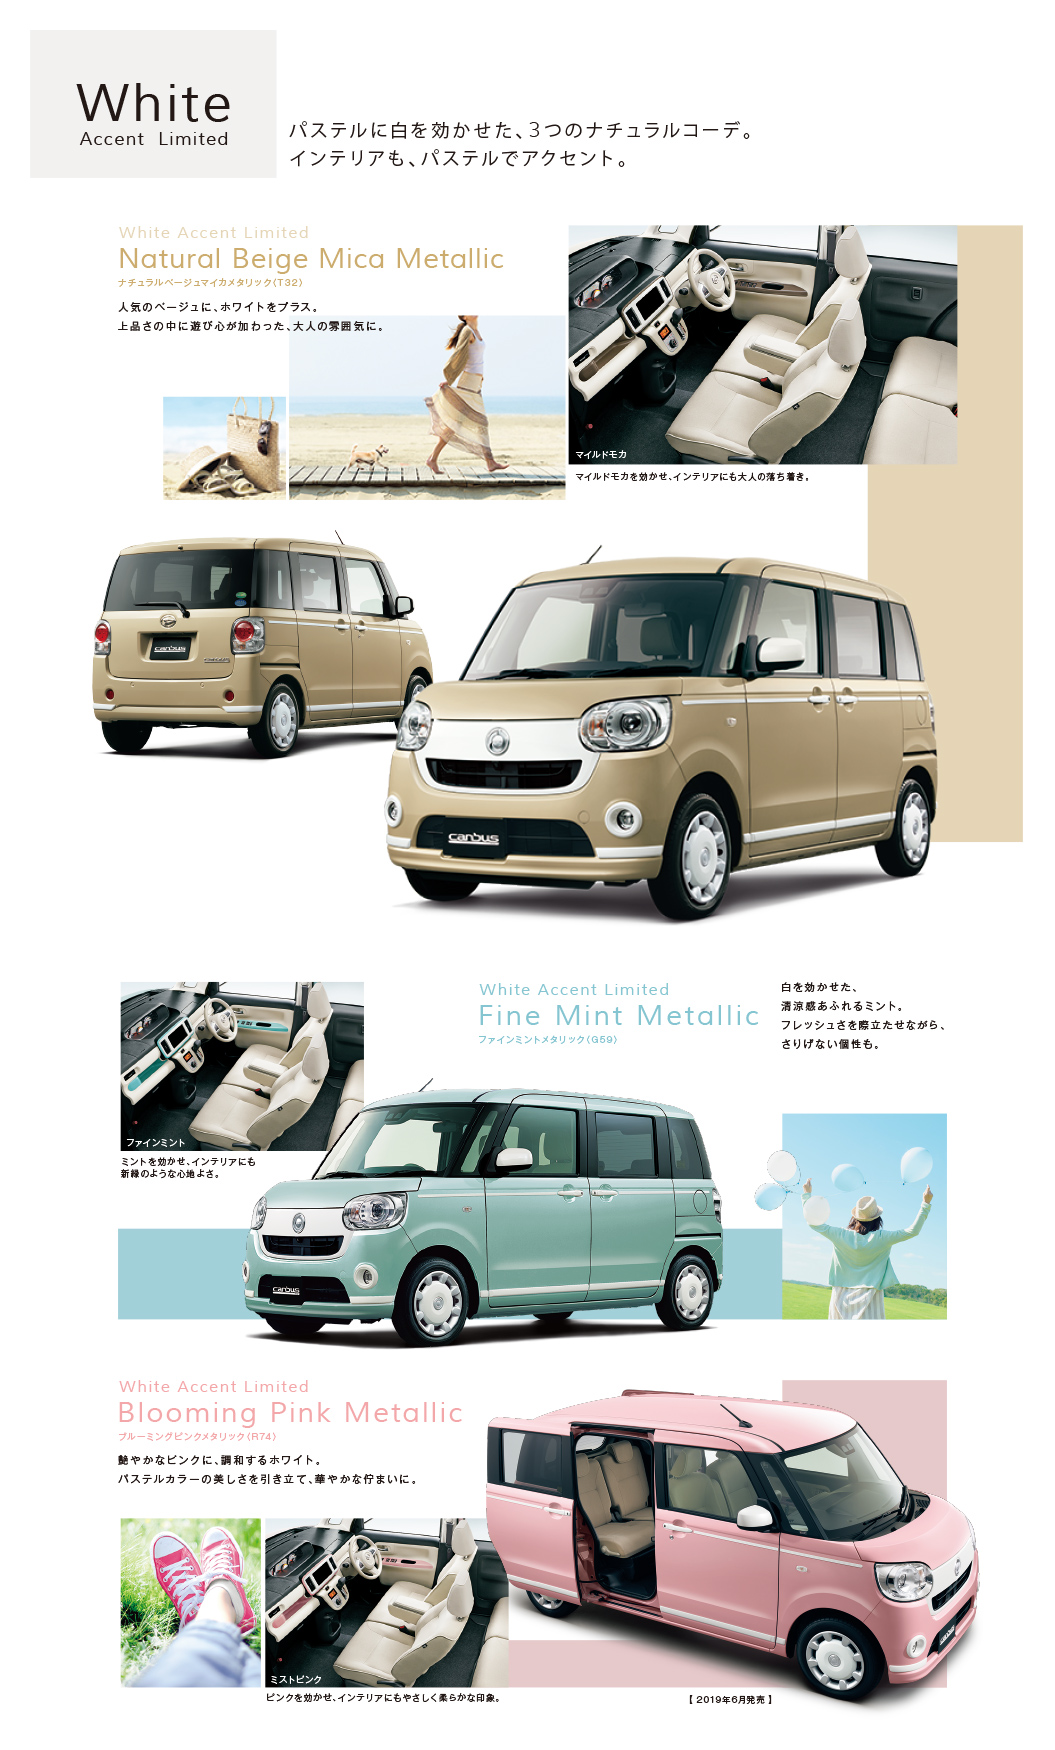 https://www.ryukyu-daihatsu.co.jp/common/uploads/01_02.jpg